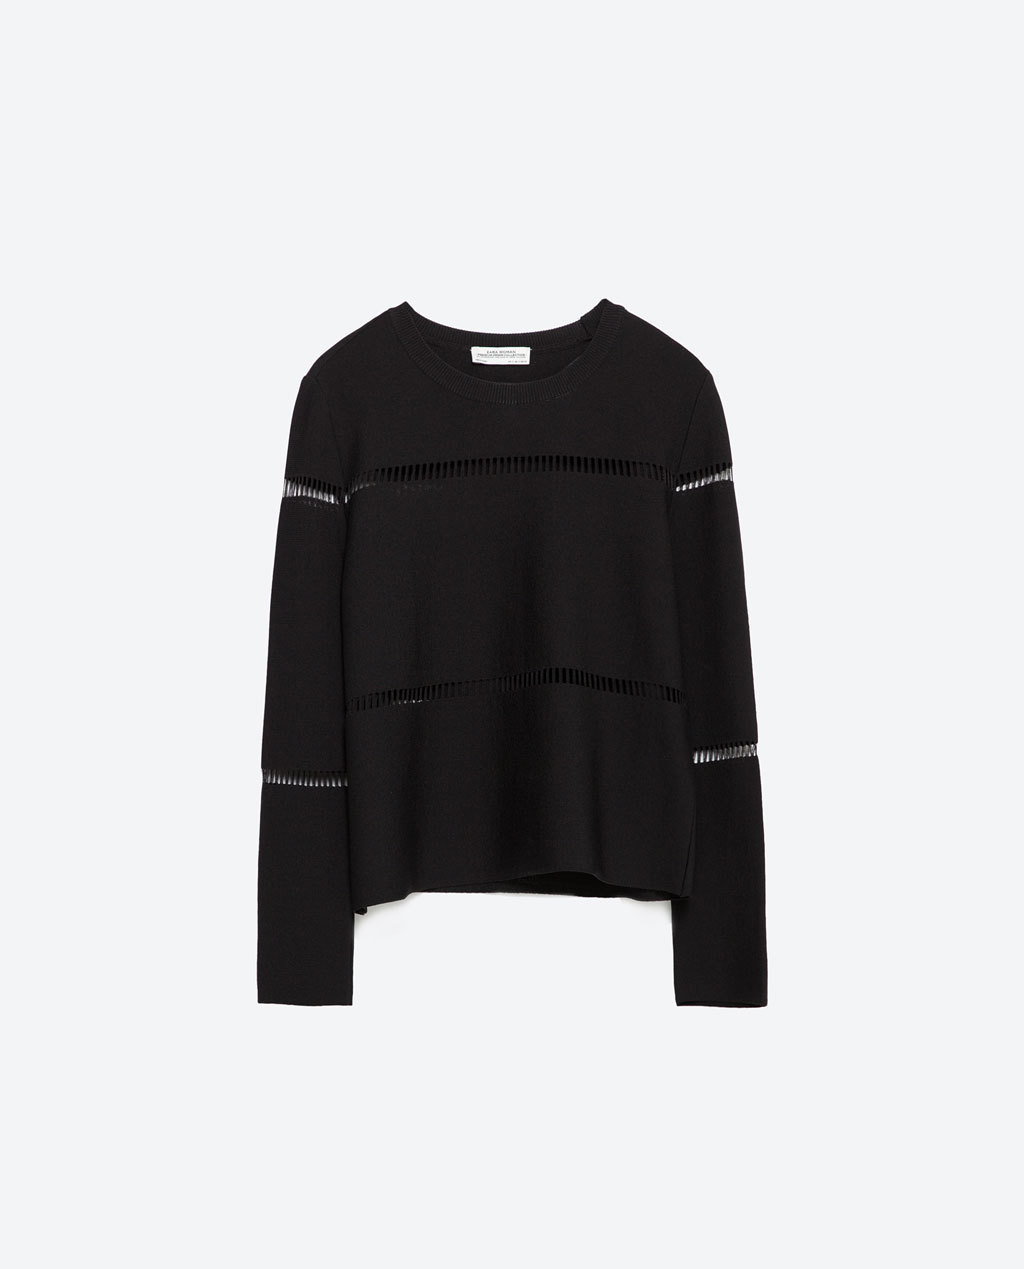 Cut Out Sweater - pattern: plain; style: standard; predominant colour: black; occasions: casual, creative work; length: standard; fit: standard fit; neckline: crew; sleeve length: long sleeve; sleeve style: standard; texture group: knits/crochet; pattern type: knitted - fine stitch; season: a/w 2015; wardrobe: basic